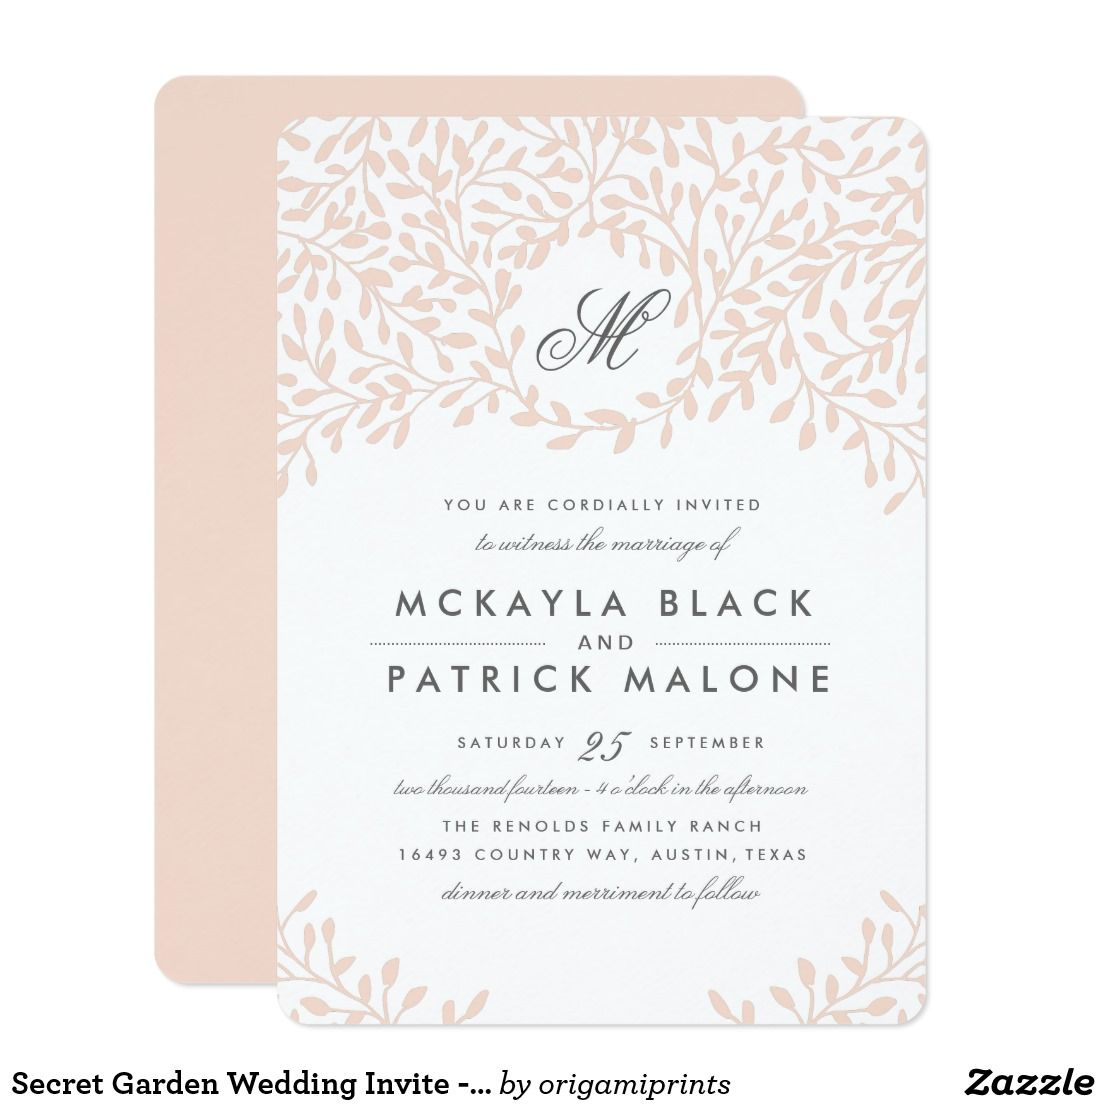 Secret Garden Wedding Invite  Blush is part of Secret garden Invitations - Elegant pink floral wedding design by Shelby Allison  Click the link below to view the entire Secret Garden Collection that includes matching invites, rsvp cards, postage stamps and more